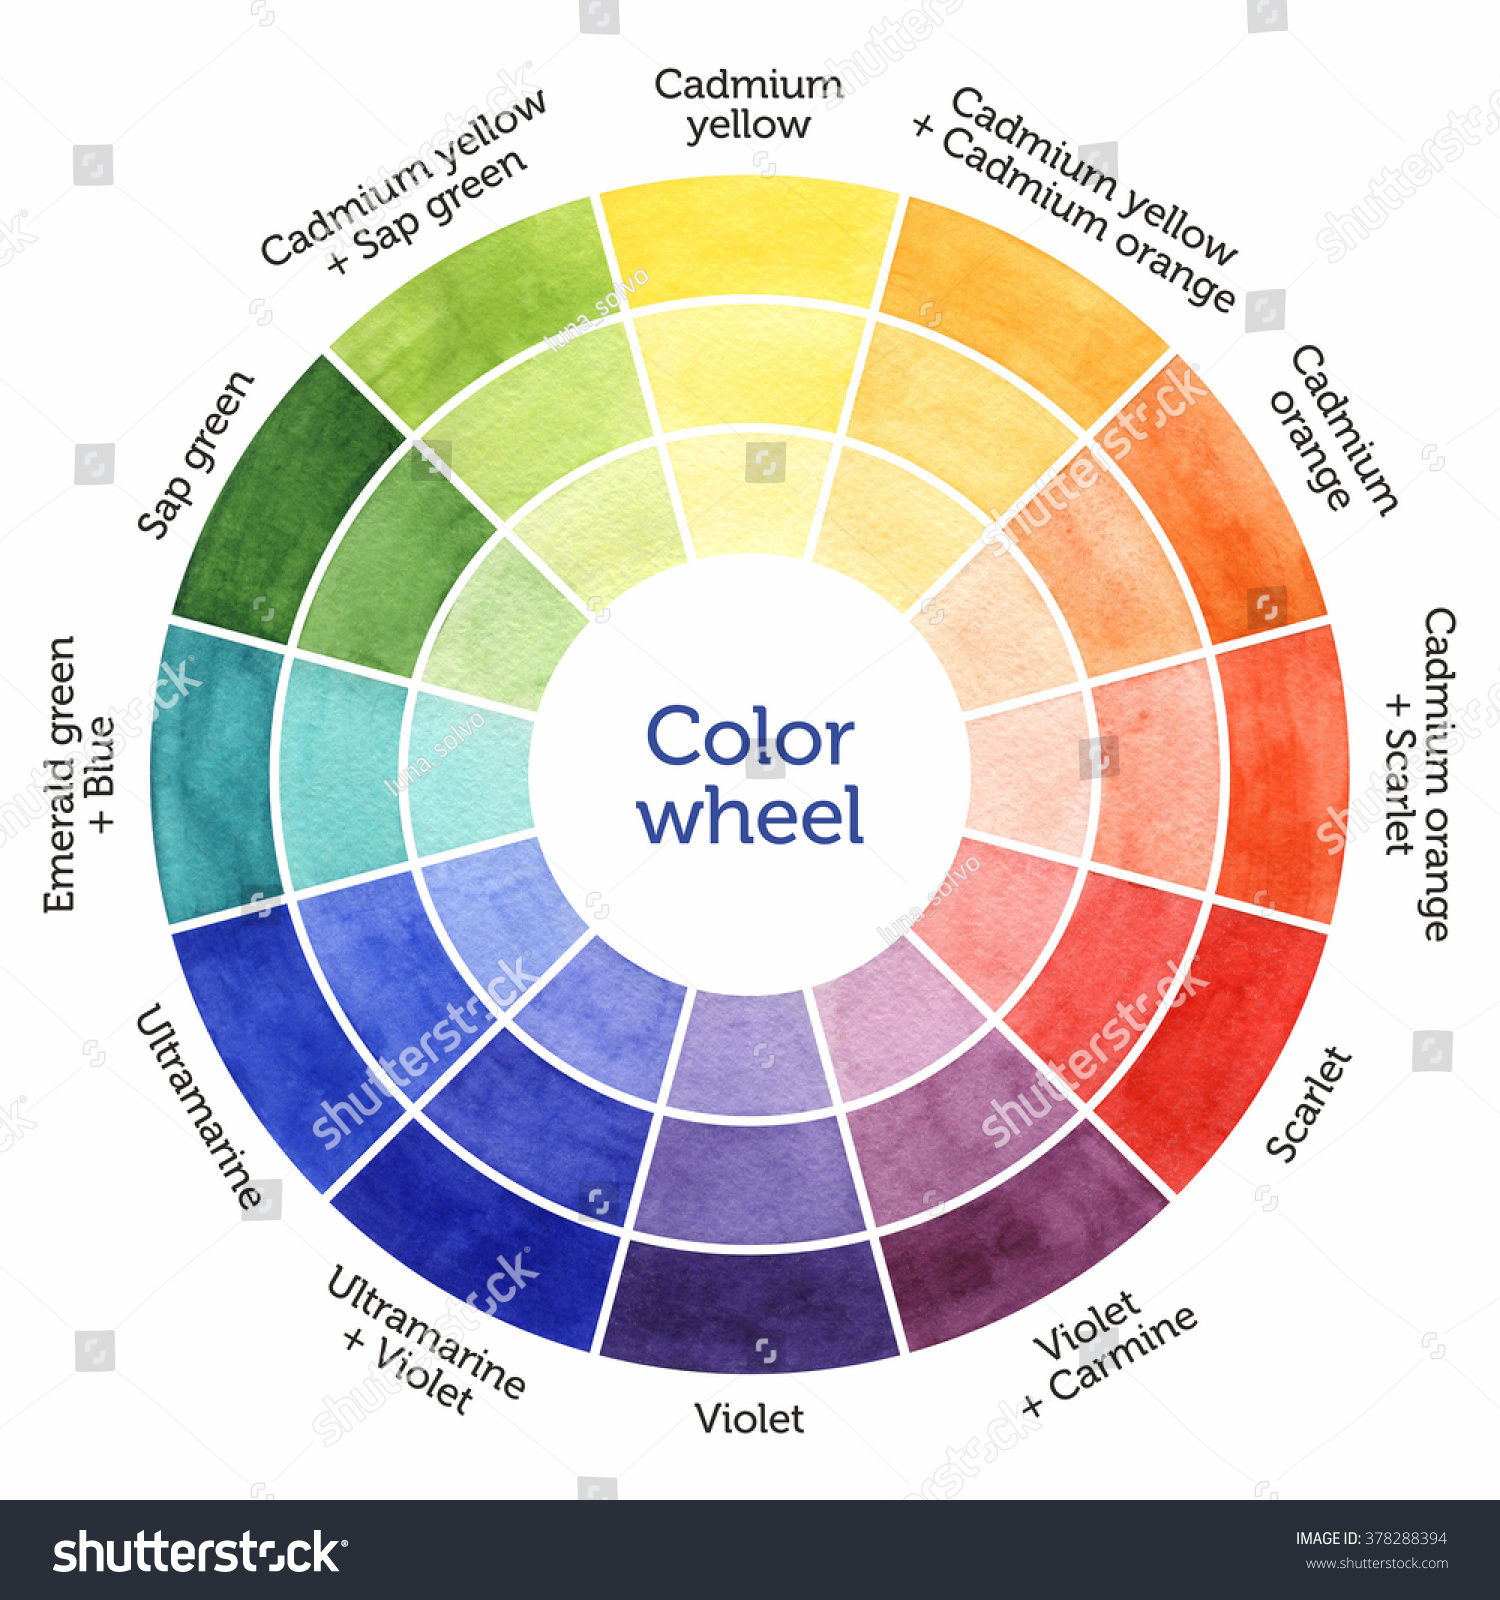 Color Wheel Meaning Chart Image Collections Free Any